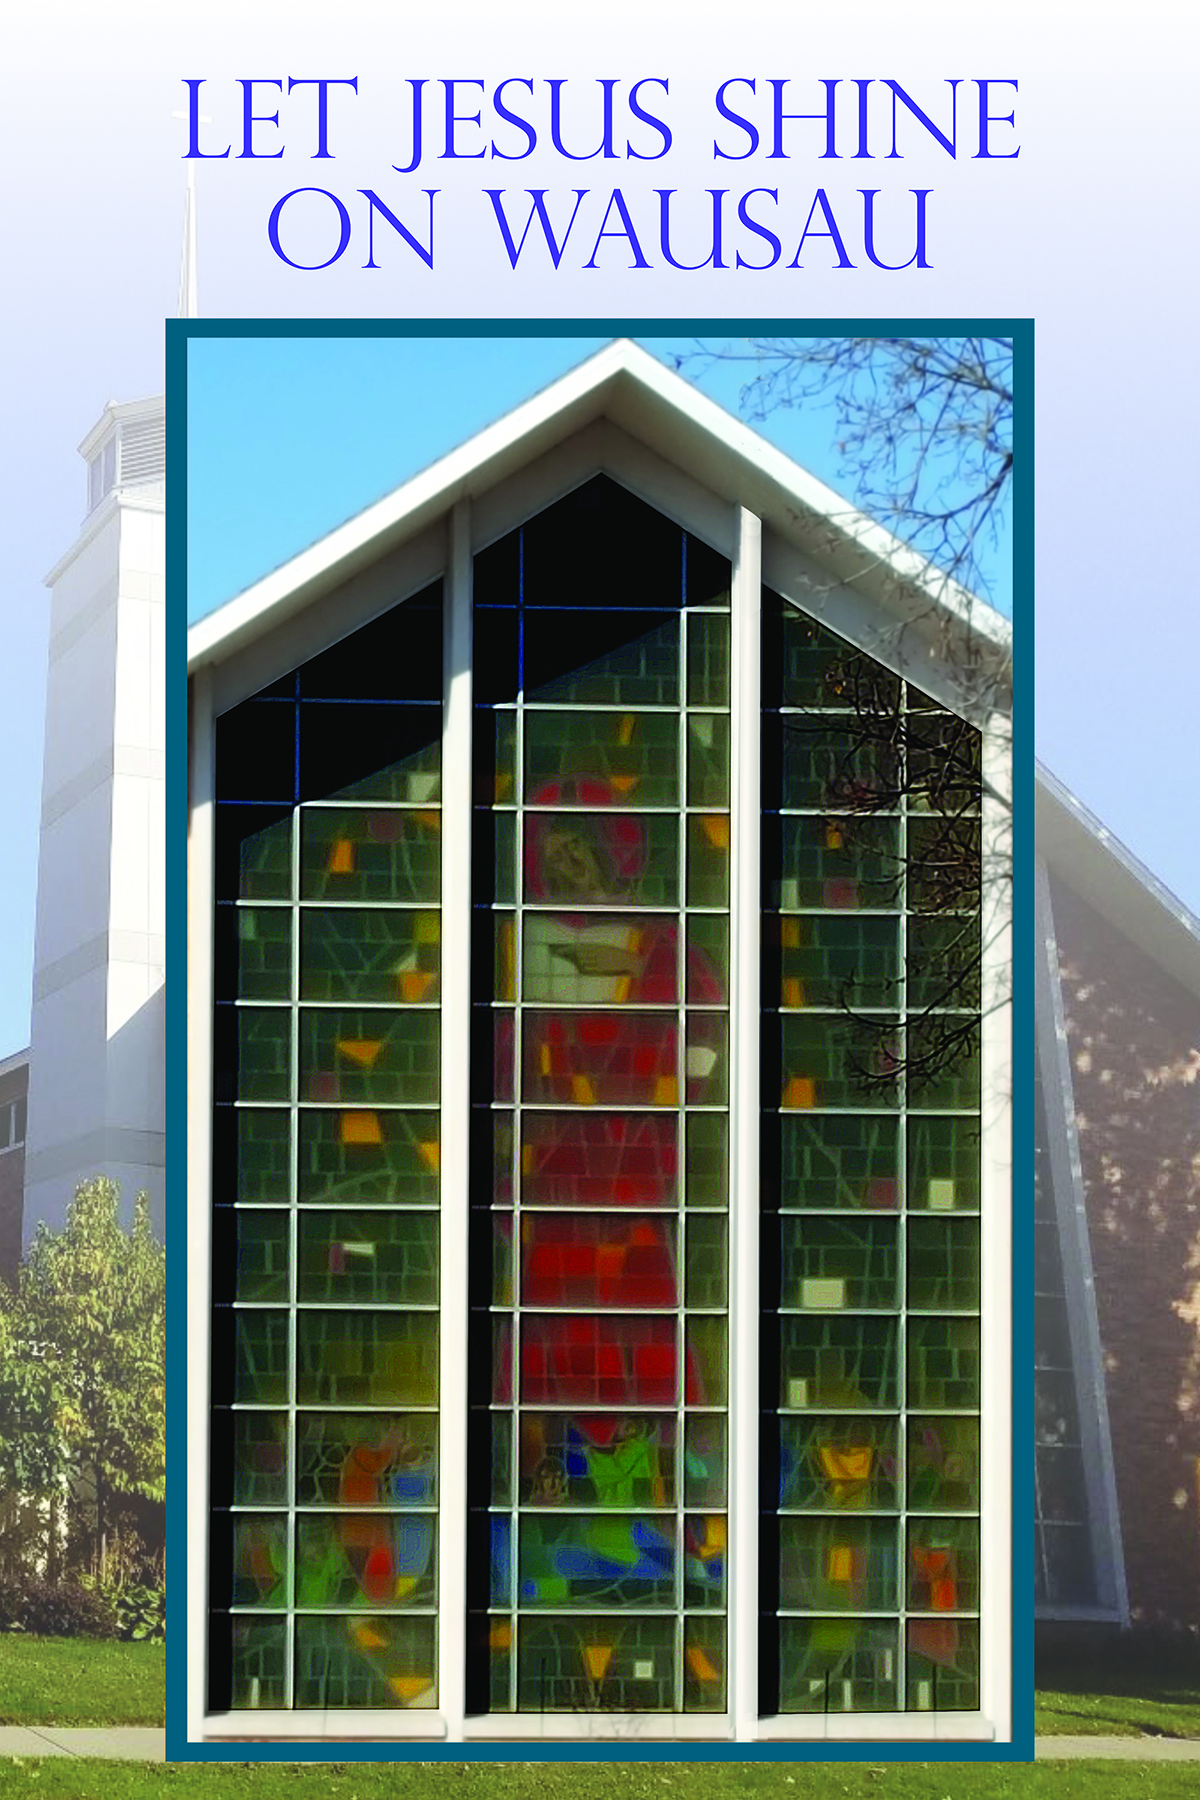 First United Methodist Church - Wausau Wisconsin Live and Share